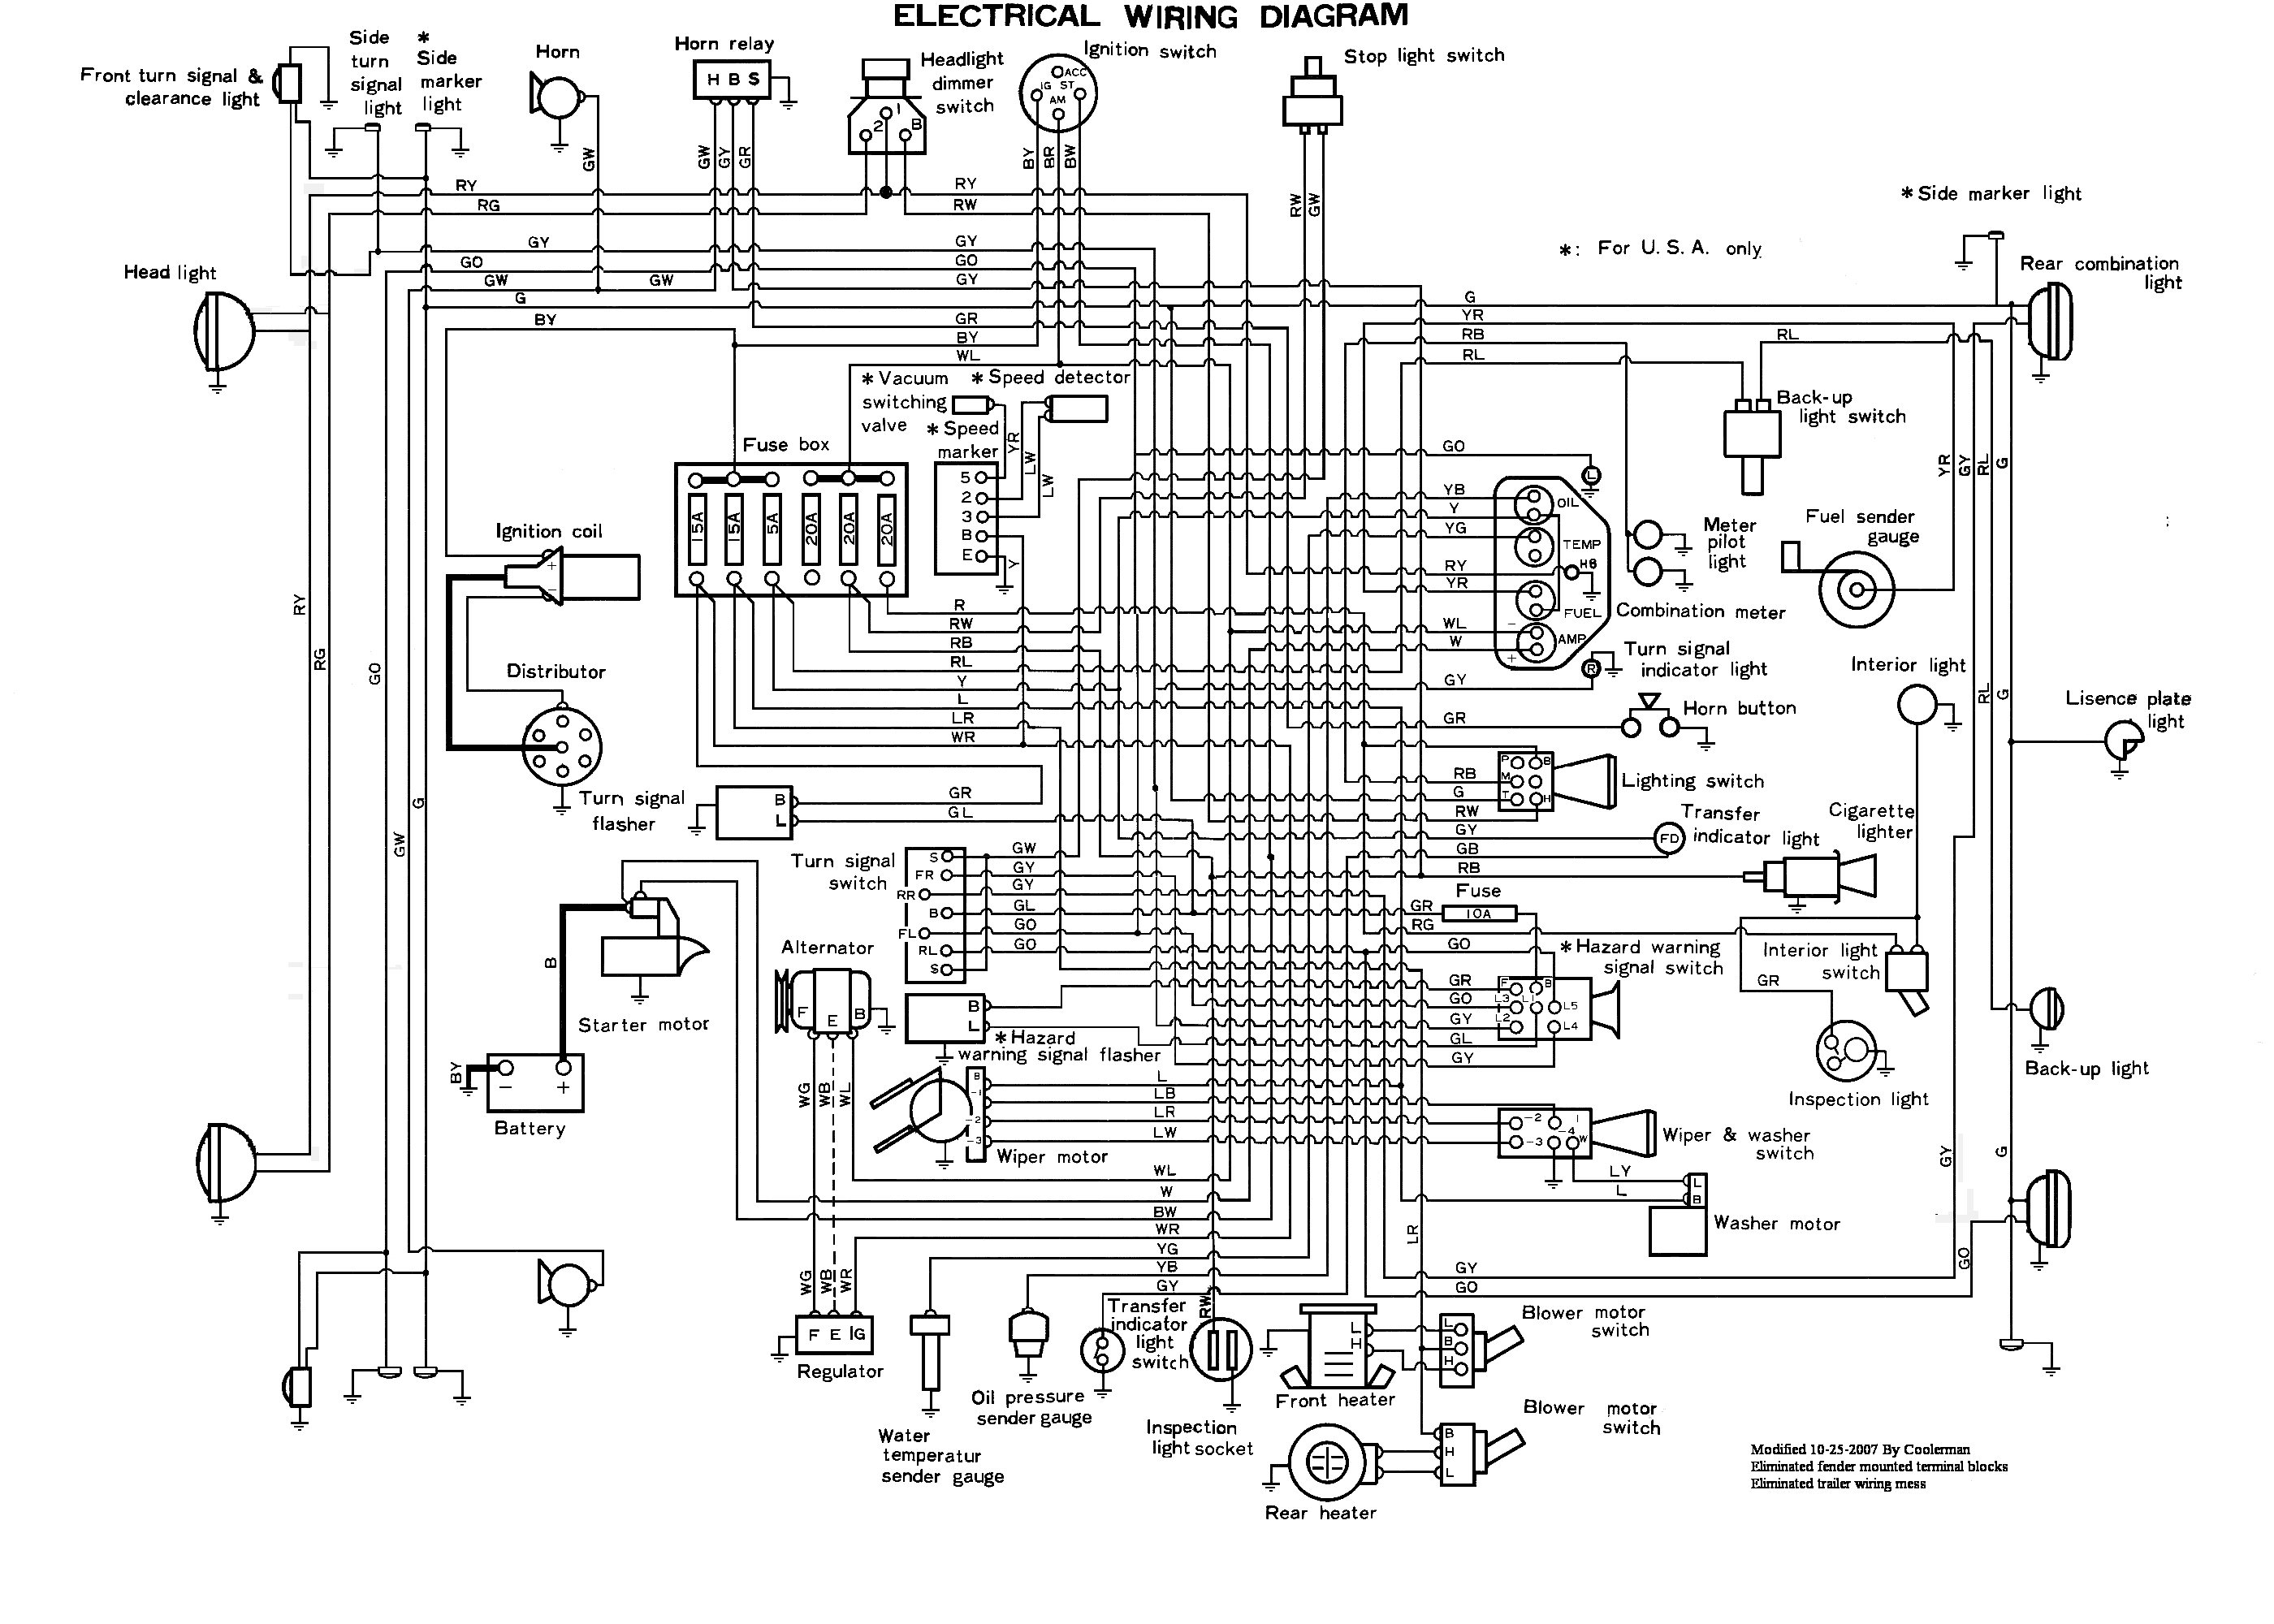 Clean71fj40_wire 1971 electrical harness land cruiser 100 electrical wiring diagram at nearapp.co